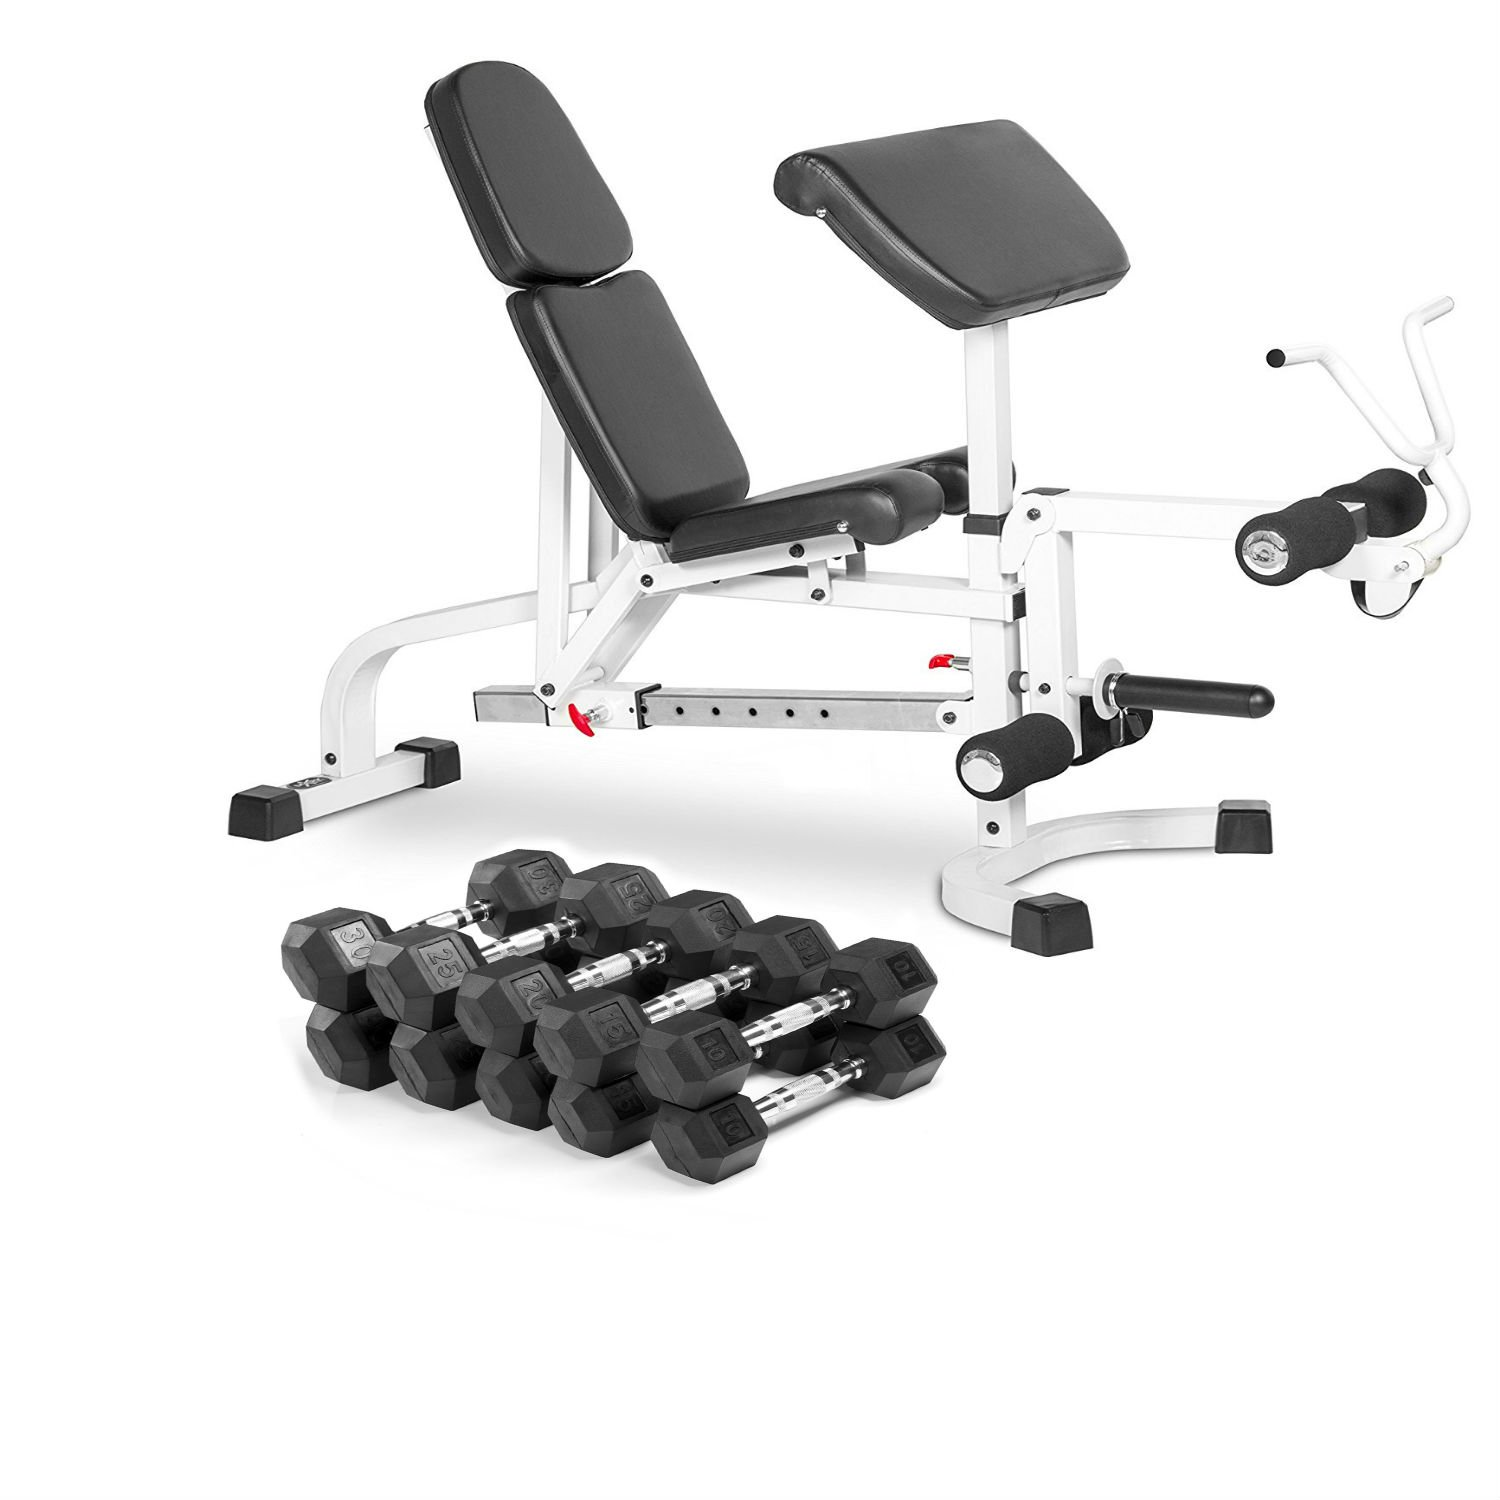 Combo Offer XMark Fitness FID Weight Bench with Leg Extension and Preacher Curl with Premium Quality, Rubber Coated Hex Dumbbells-Sold in Sets (5 Pair: 10, 15, 20, 25, and 30 lbs. - Total 200 lbs.)